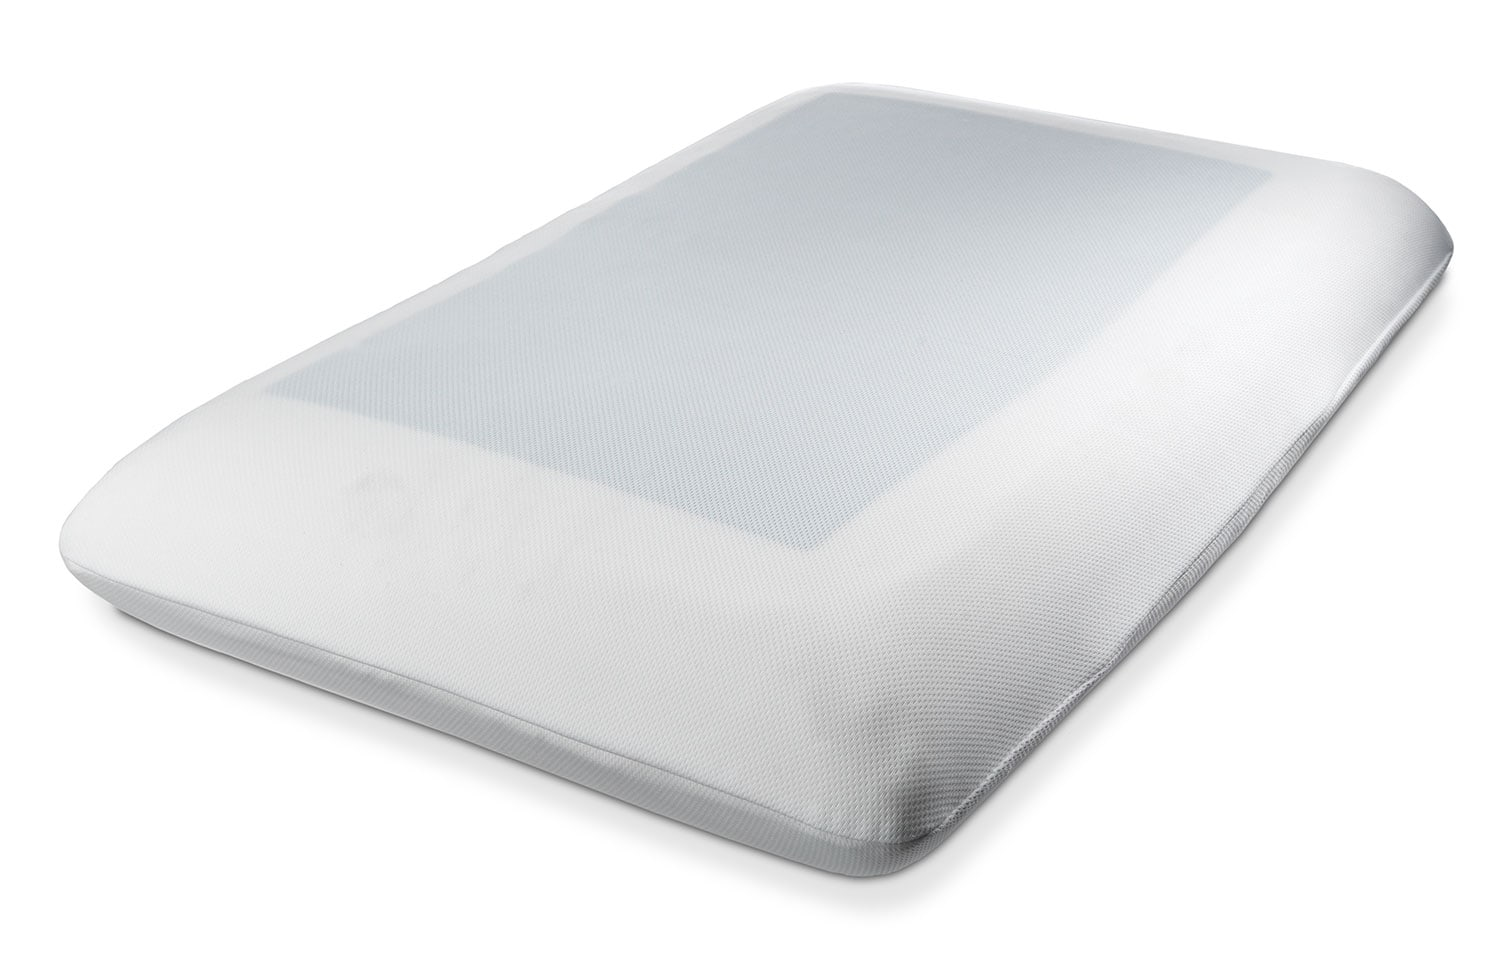 Mattresses and Bedding - Coolux Standard Gel Visco Pillow